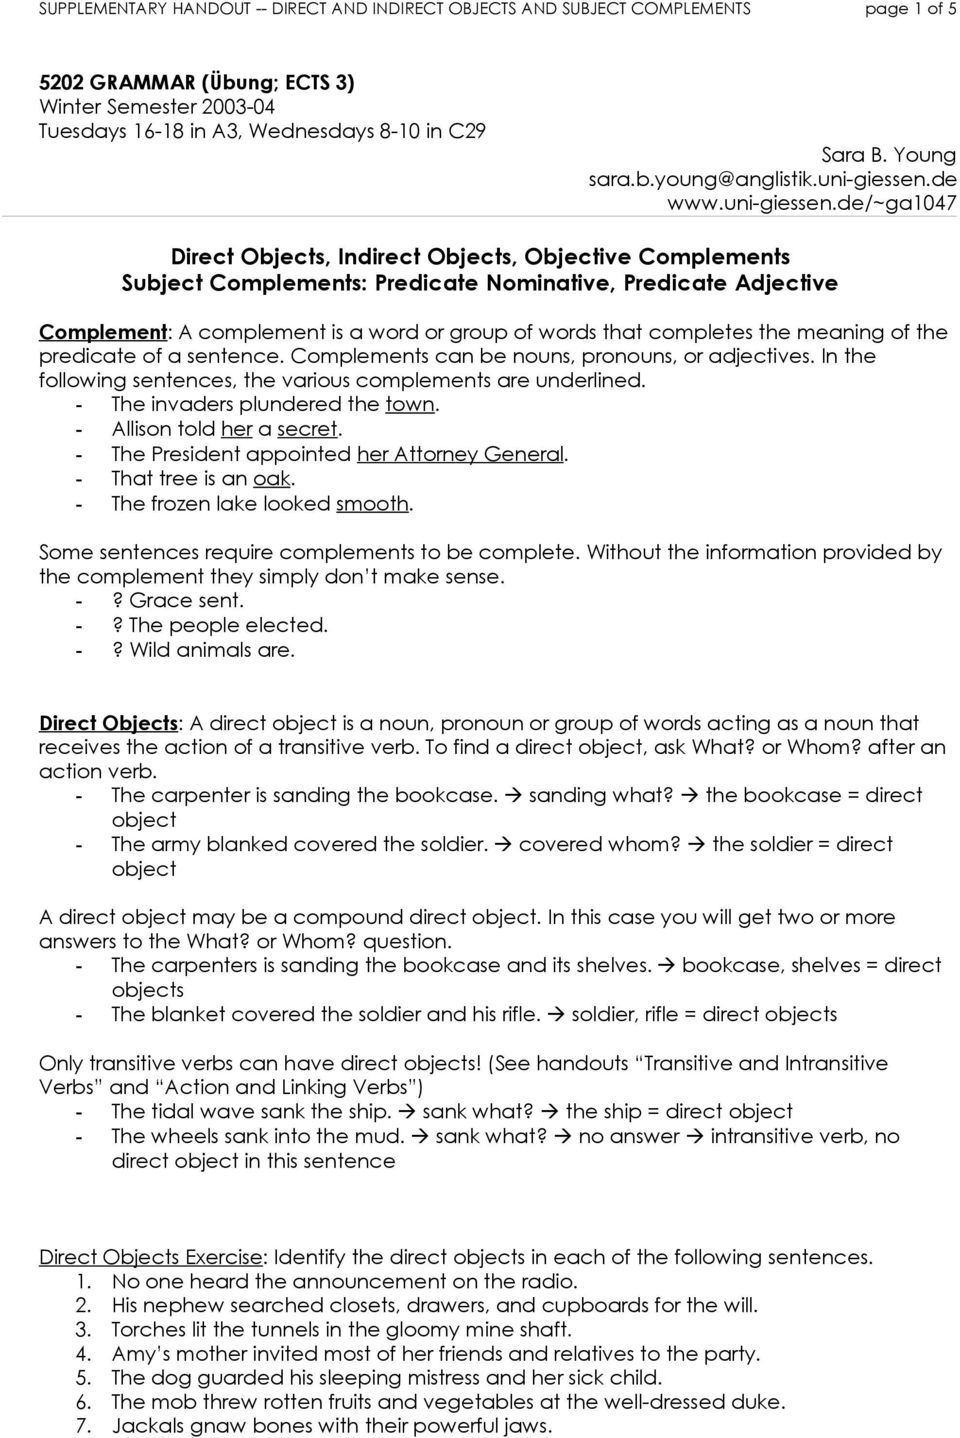 Workbooks pronoun worksheets for 3rd grade : Subject Complements Worksheet Free Worksheets Library | Download ...